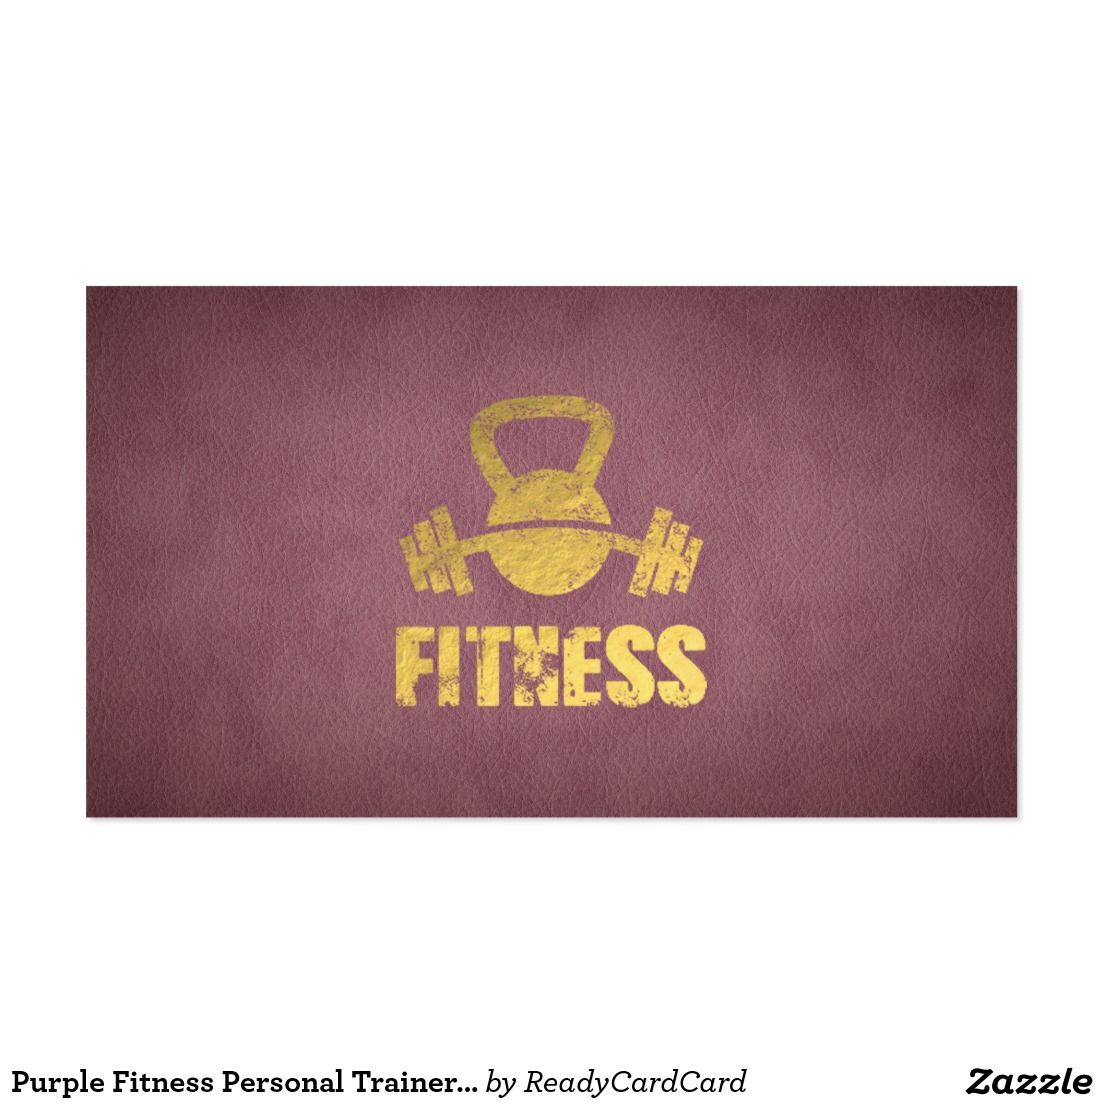 Purple Fitness Personal Trainer Kettlebell Barbell Business Card ...